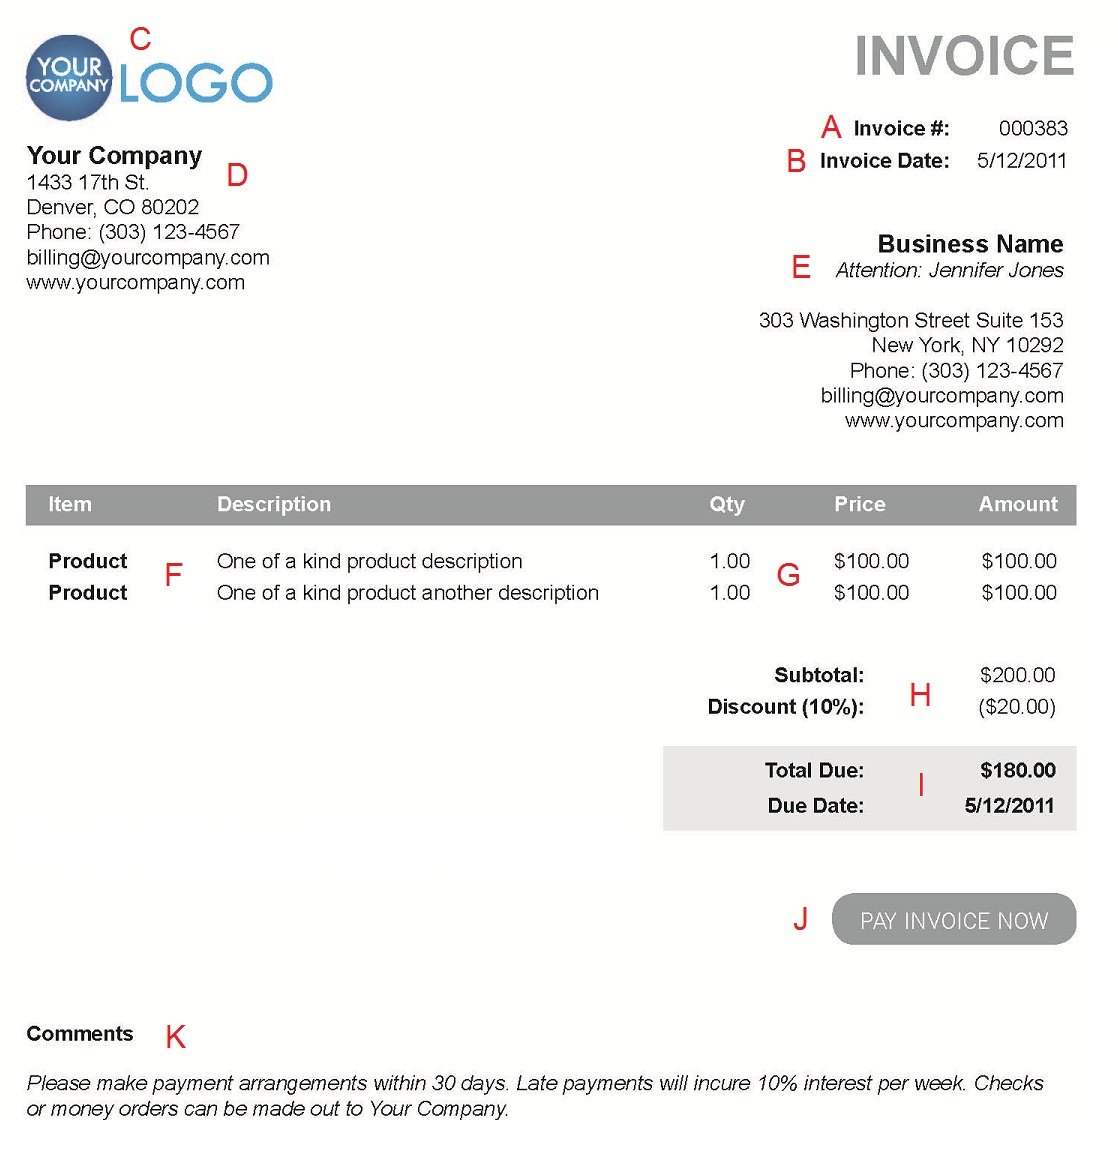 Picnictoimpeachus  Scenic The  Different Sections Of An Electronic Payment Invoice With Goodlooking A  With Amazing Receipt Invoice Also Microsoft Word Invoice Templates In Addition Sale Invoice And Free Printable Invoices Online As Well As Work Order Invoice Additionally Xero Invoice From Paysimplecom With Picnictoimpeachus  Goodlooking The  Different Sections Of An Electronic Payment Invoice With Amazing A  And Scenic Receipt Invoice Also Microsoft Word Invoice Templates In Addition Sale Invoice From Paysimplecom